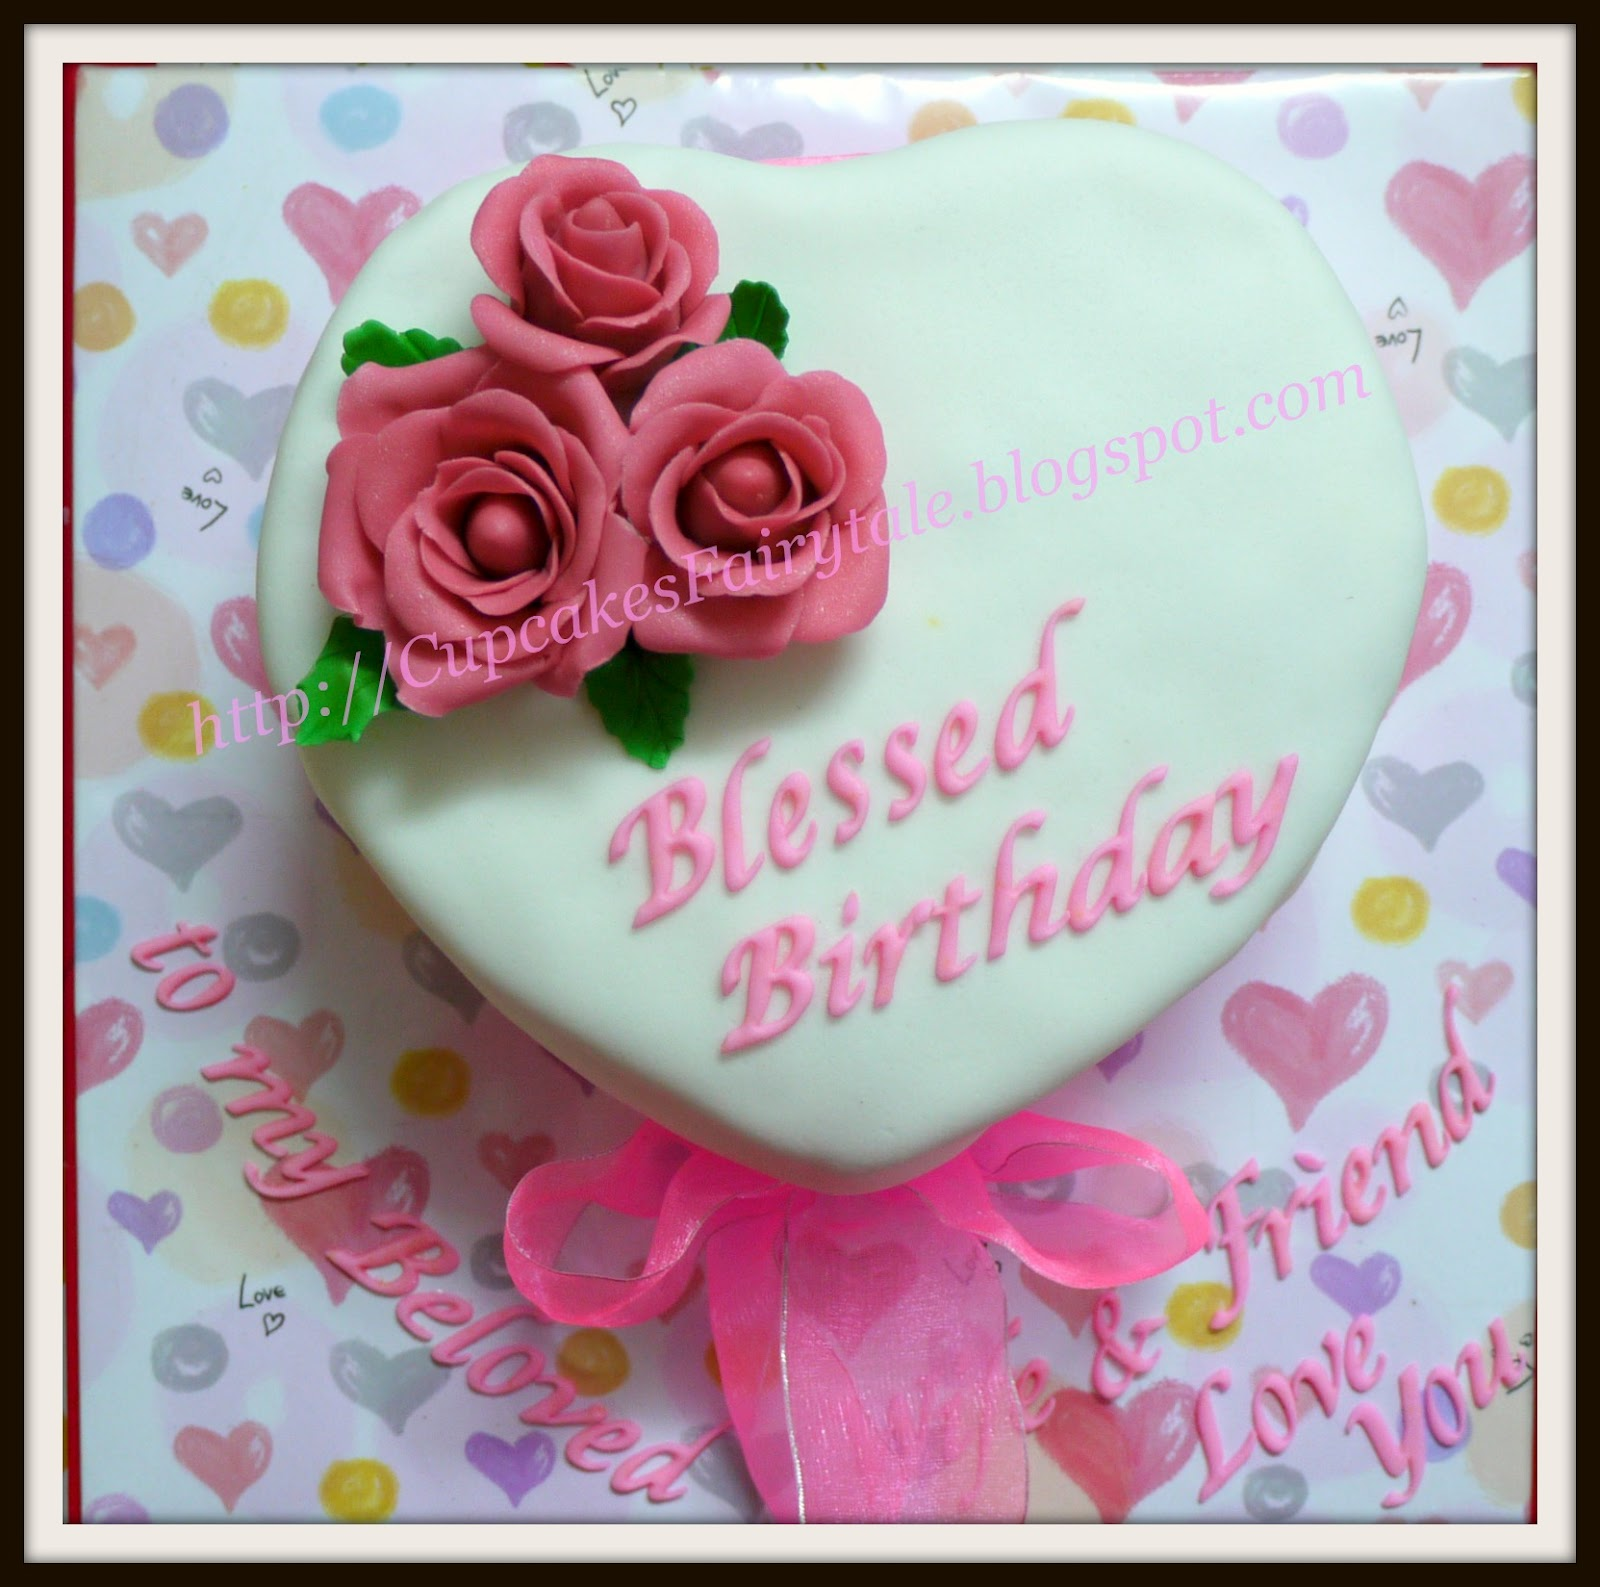 Birthday Wishes To Girlfriend Cake Image Inspiration of Cake and